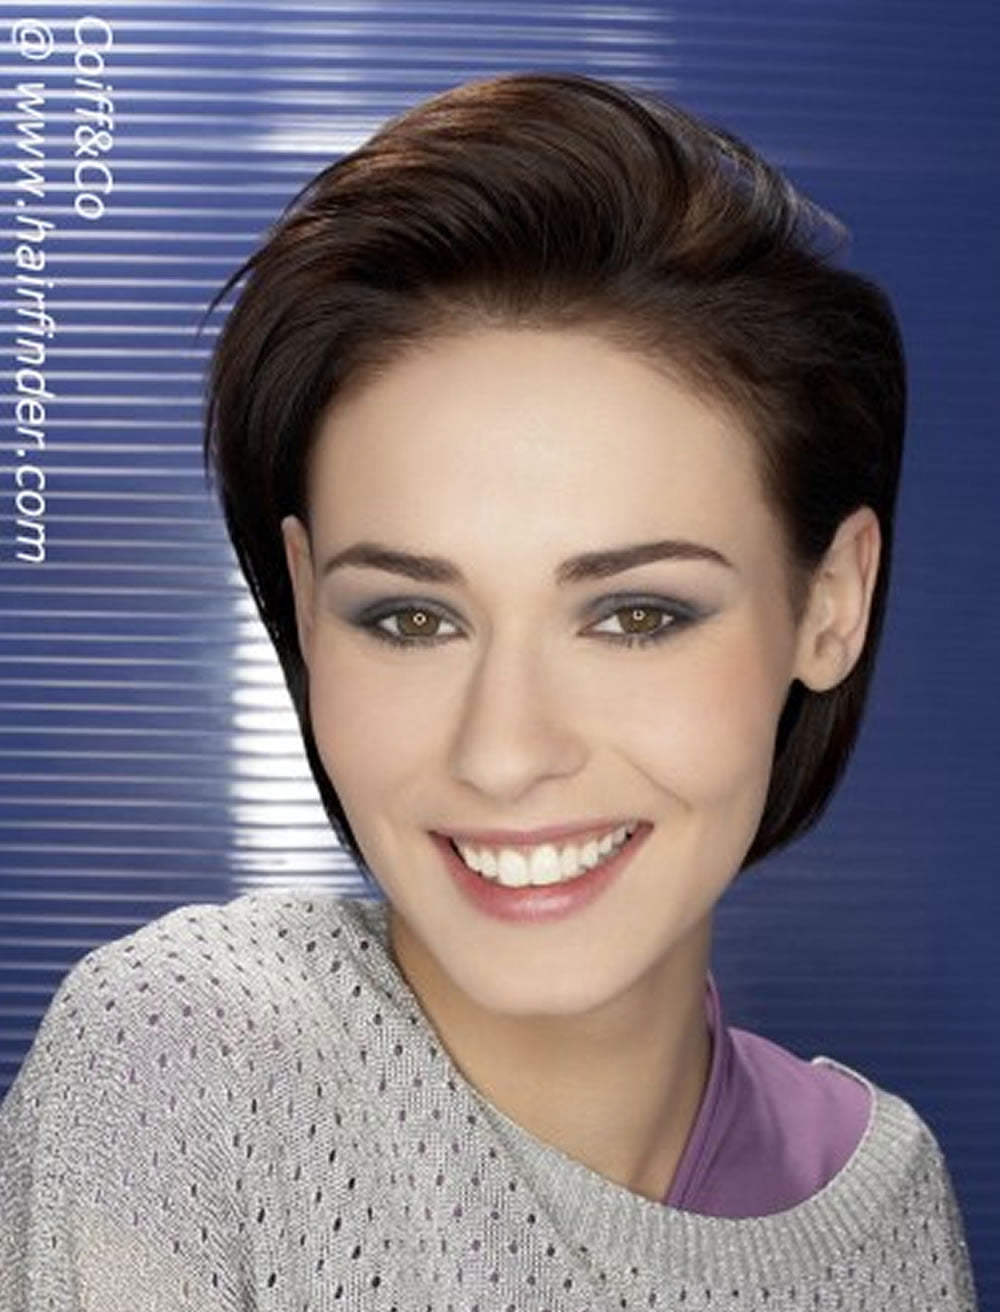 Top 32 Short Haircuts & Hairstyle ideas for Women – Page 2 ...